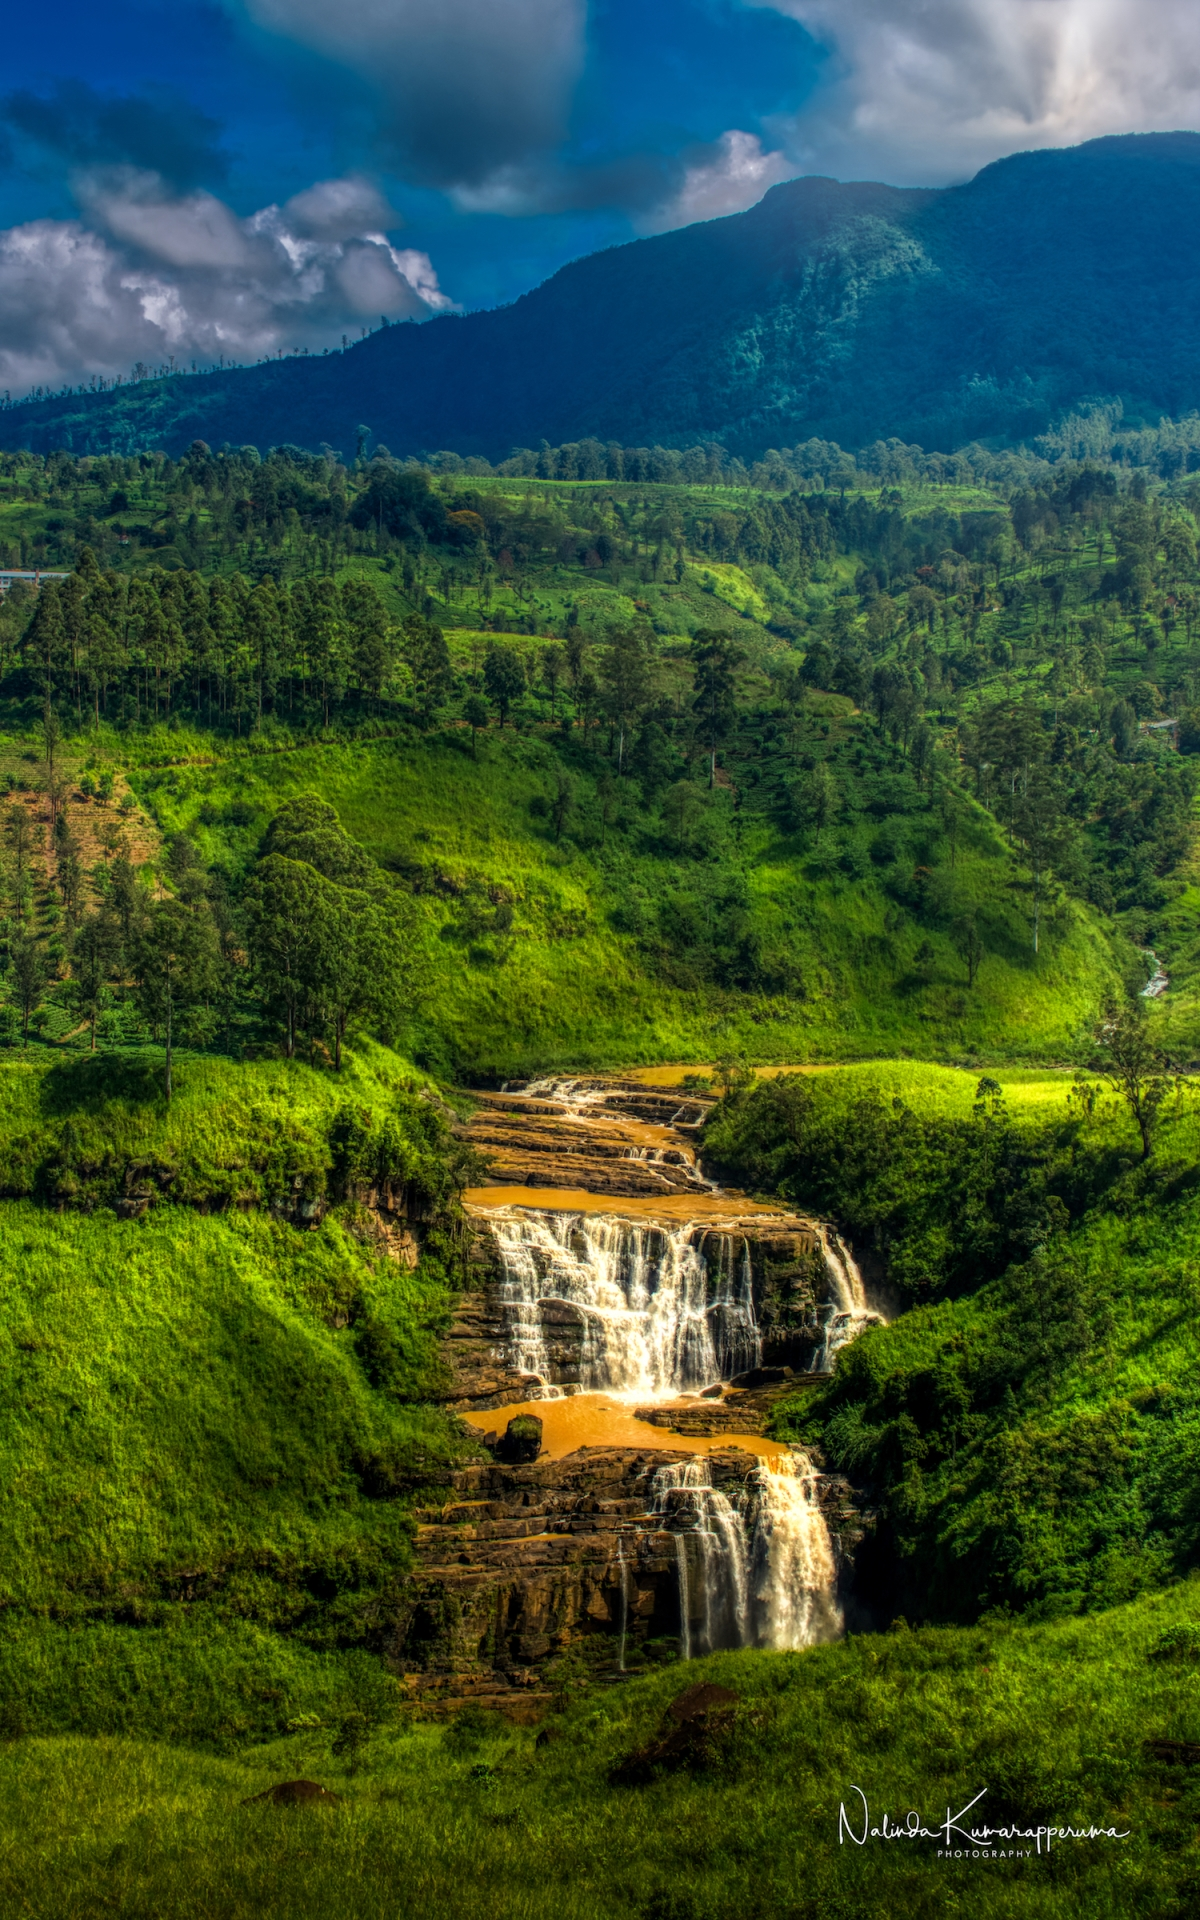 Little Niagara of Sri Lanka